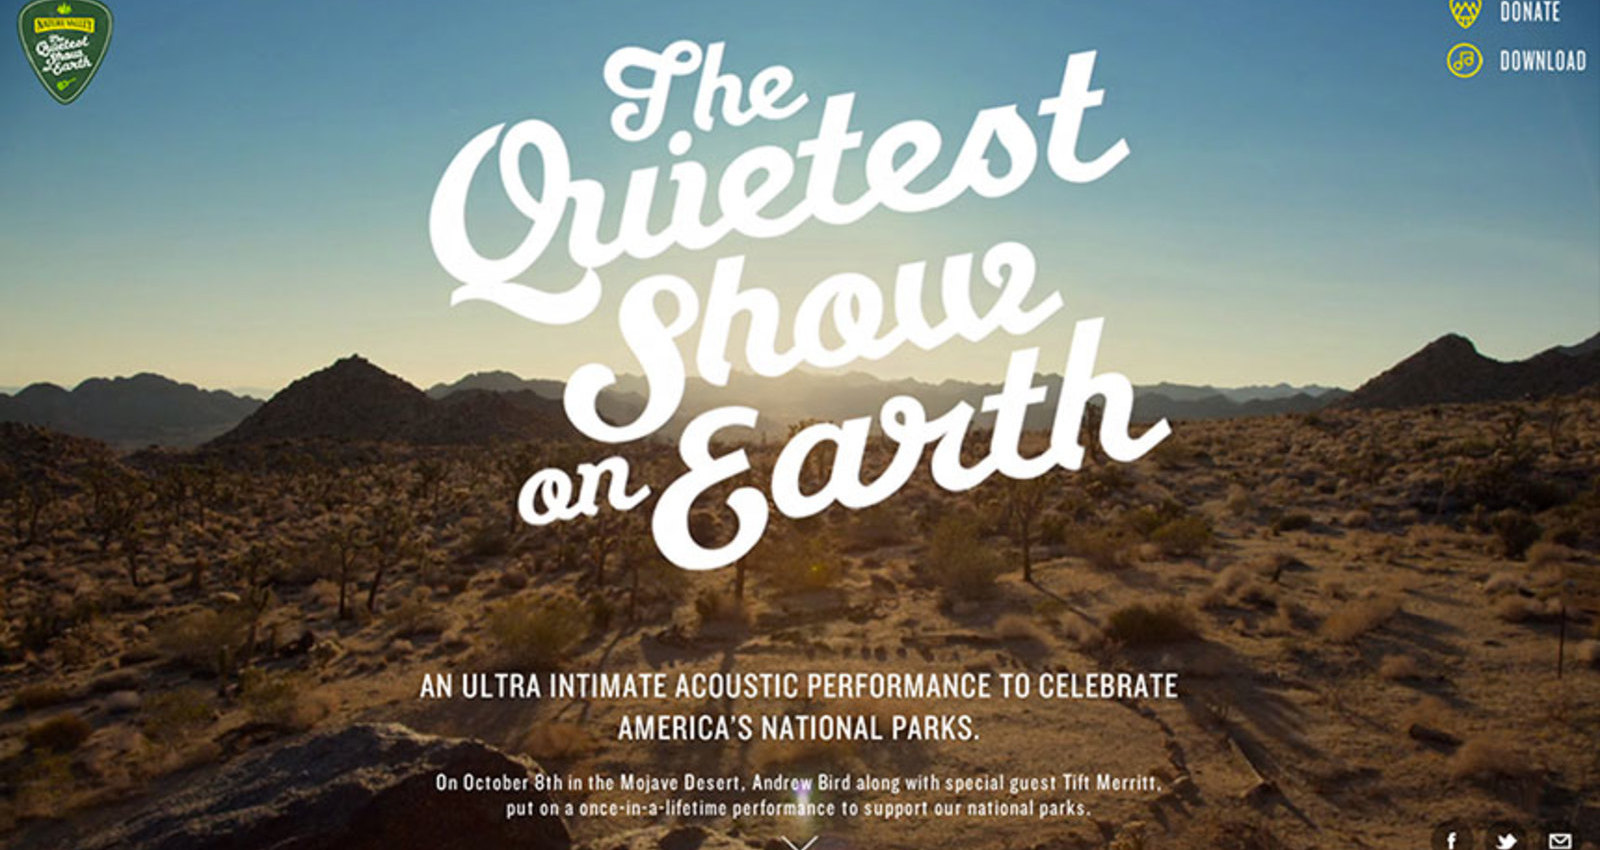 Quietest Show On Earth